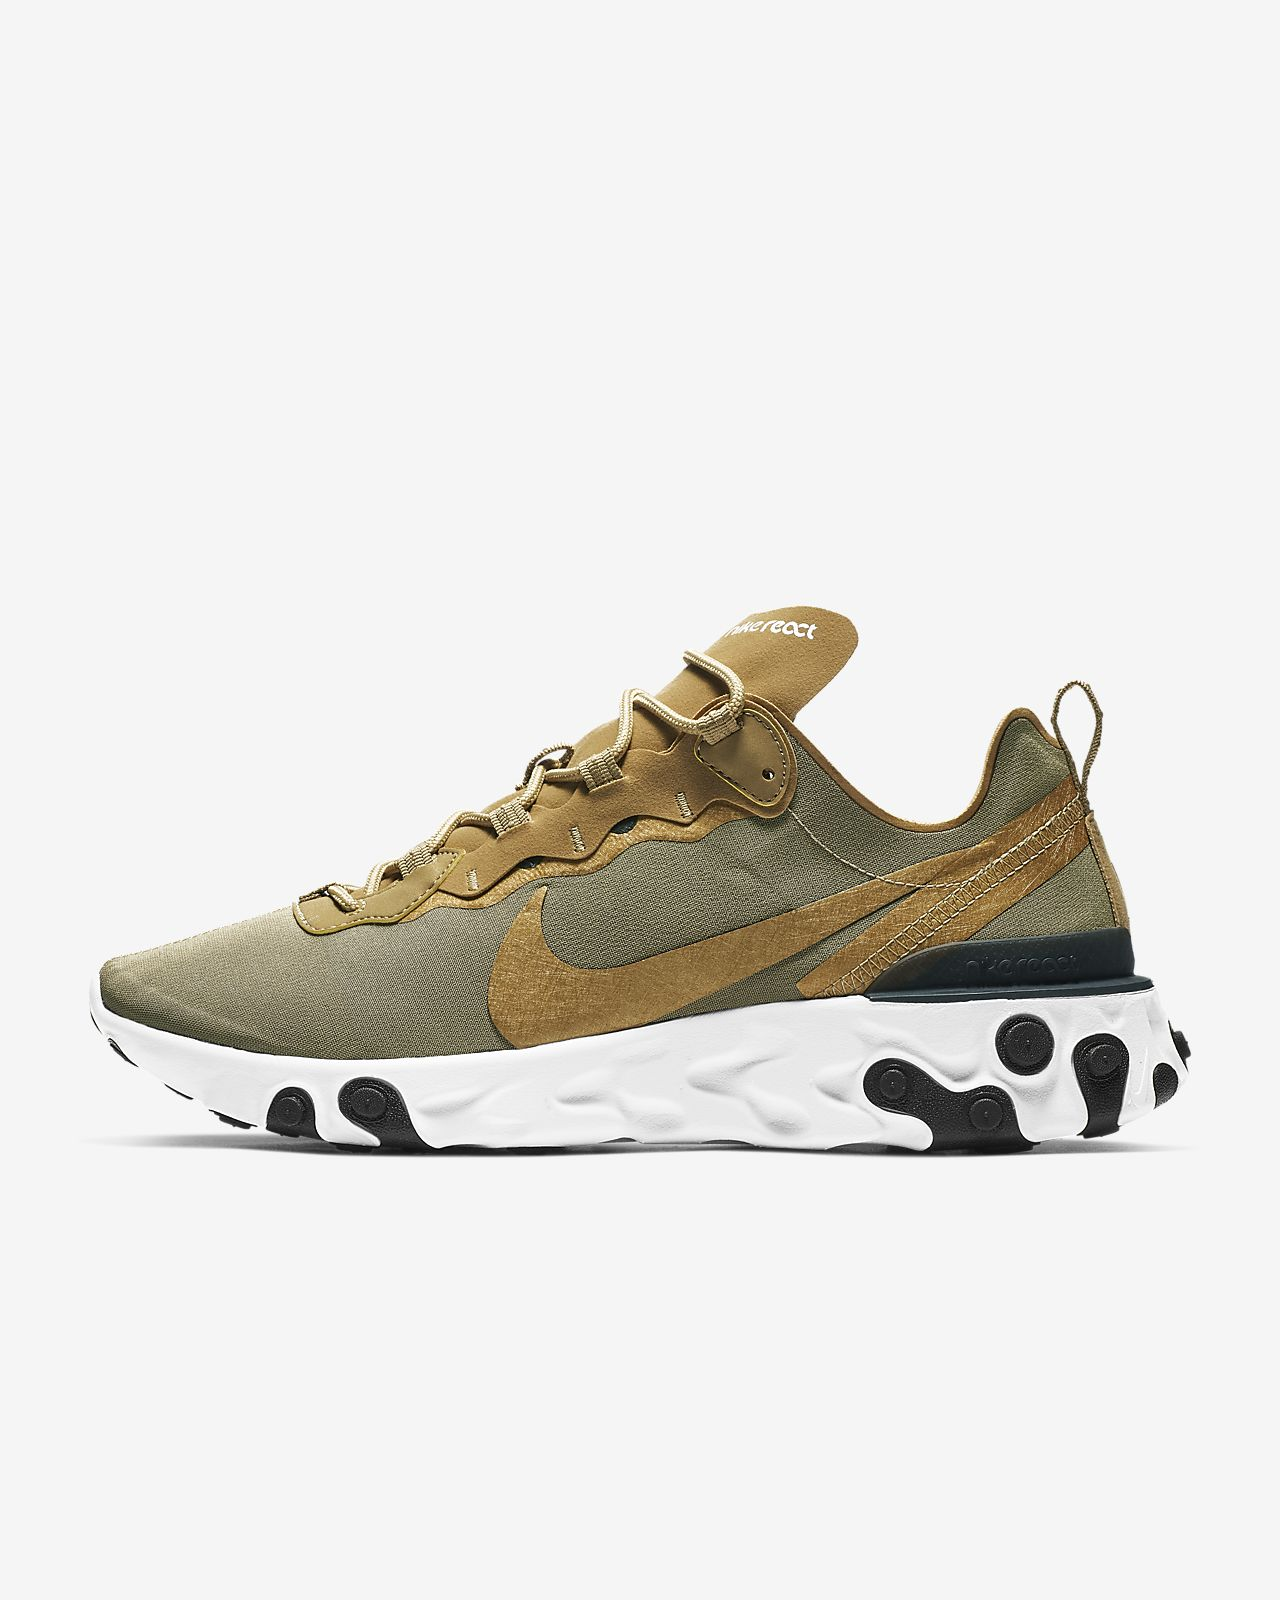 Free Nike run 2.0 mens pictures